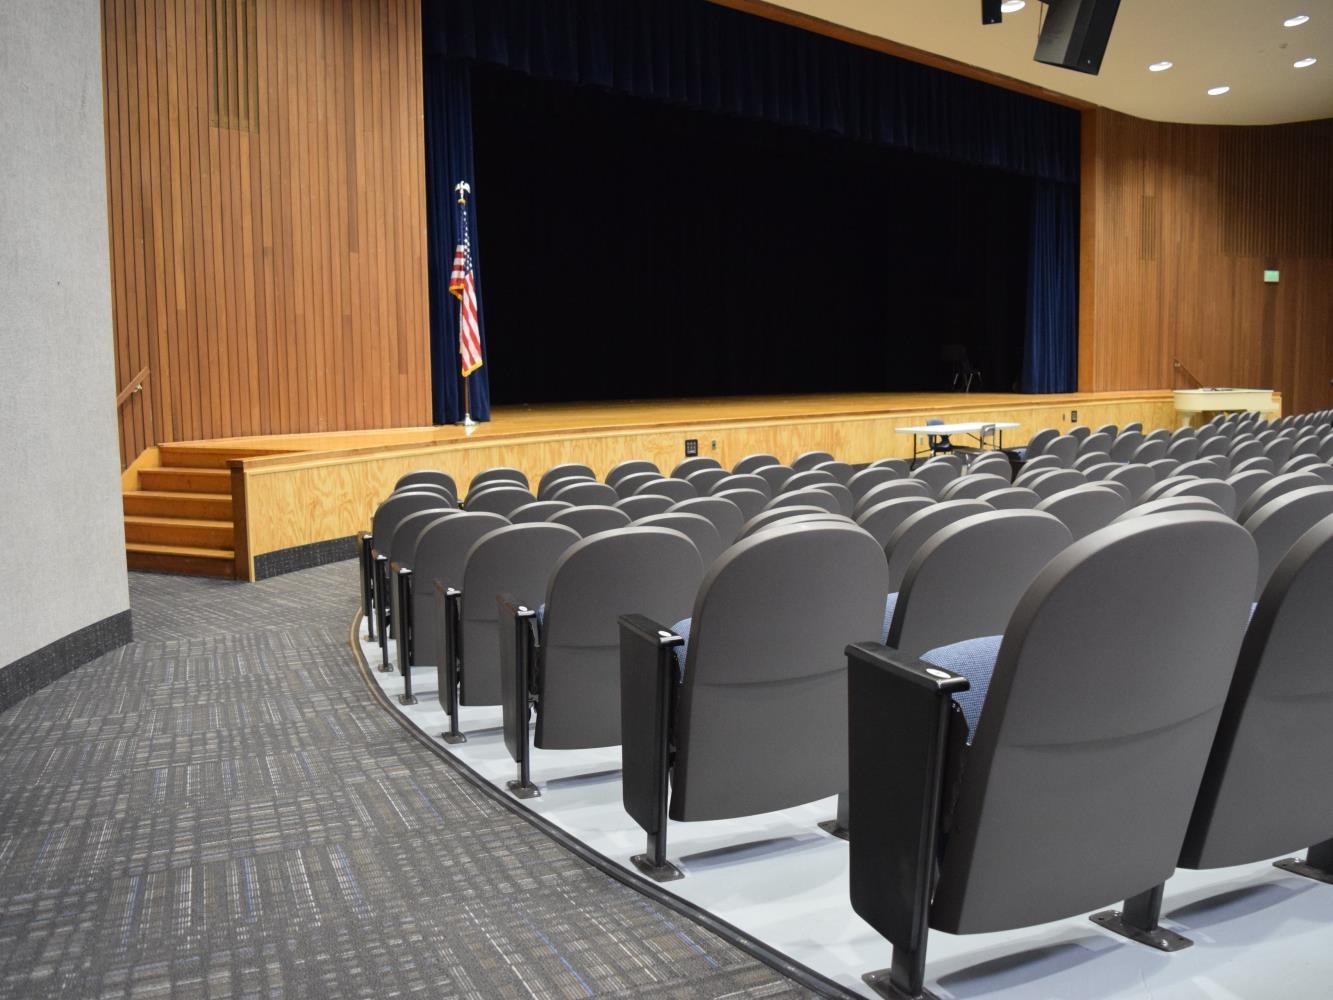 High School Auditorium Stage